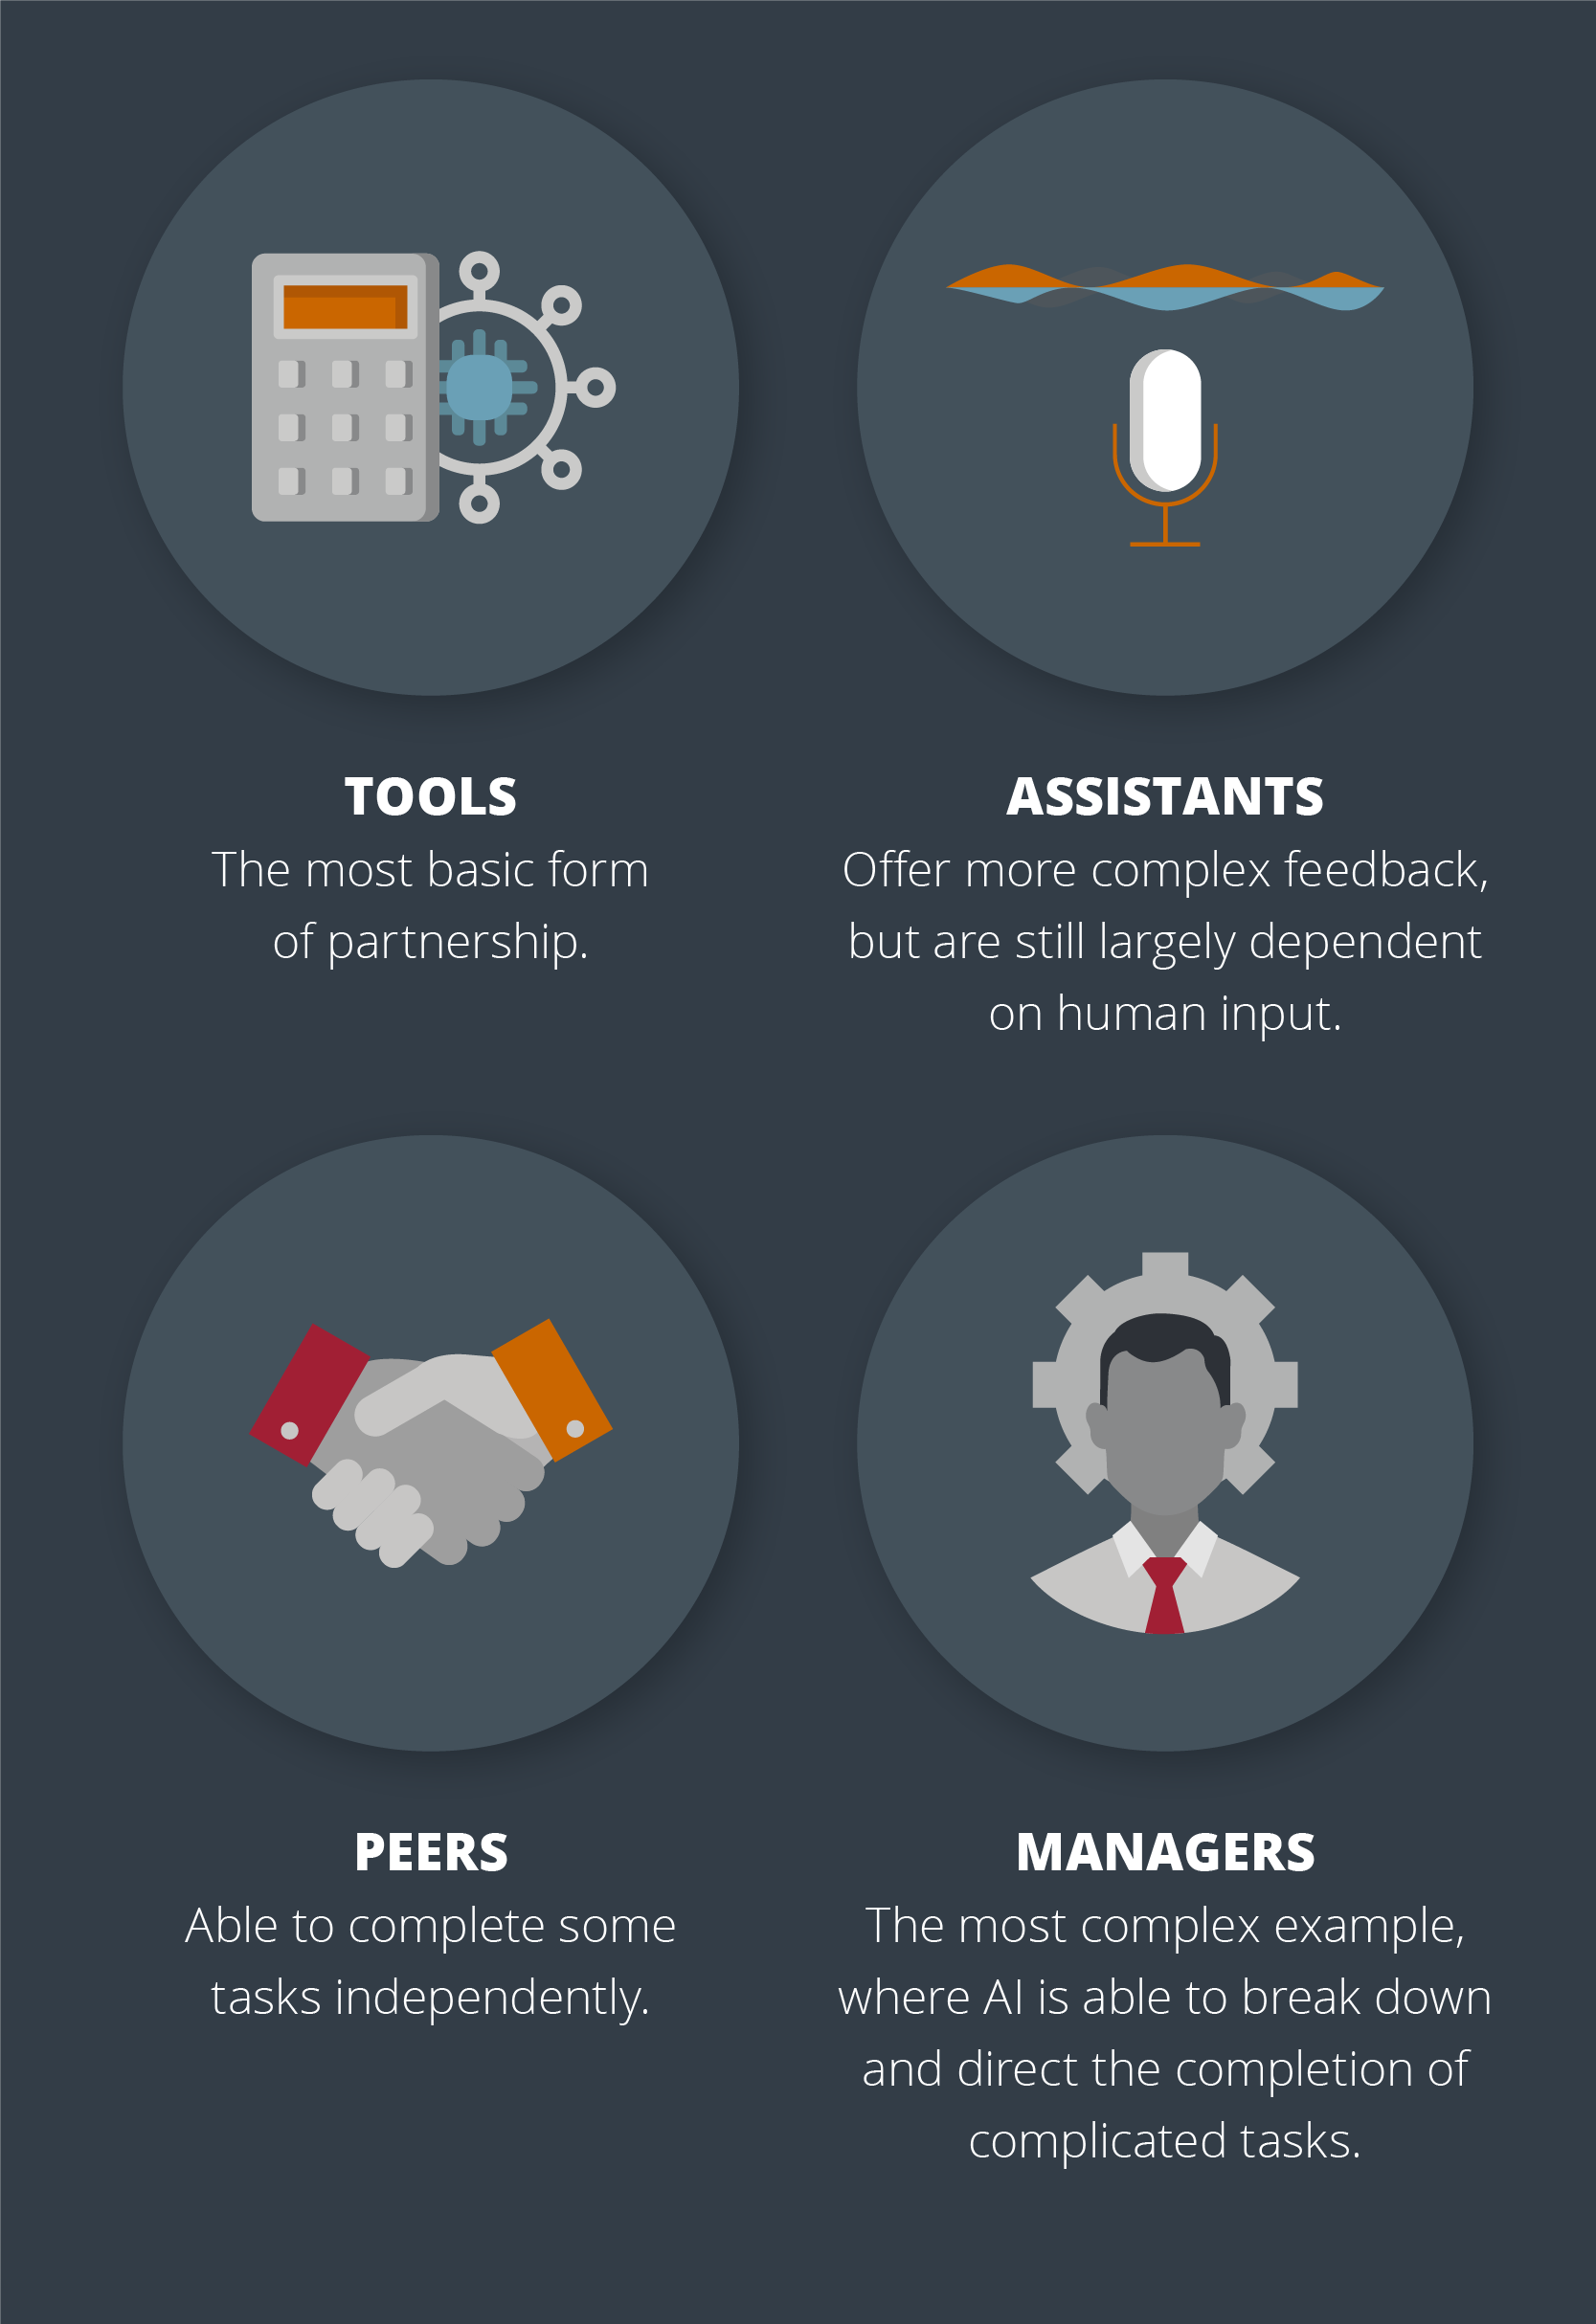 The roles of artificial intelligence in business: Tools, assistants, peers and managers